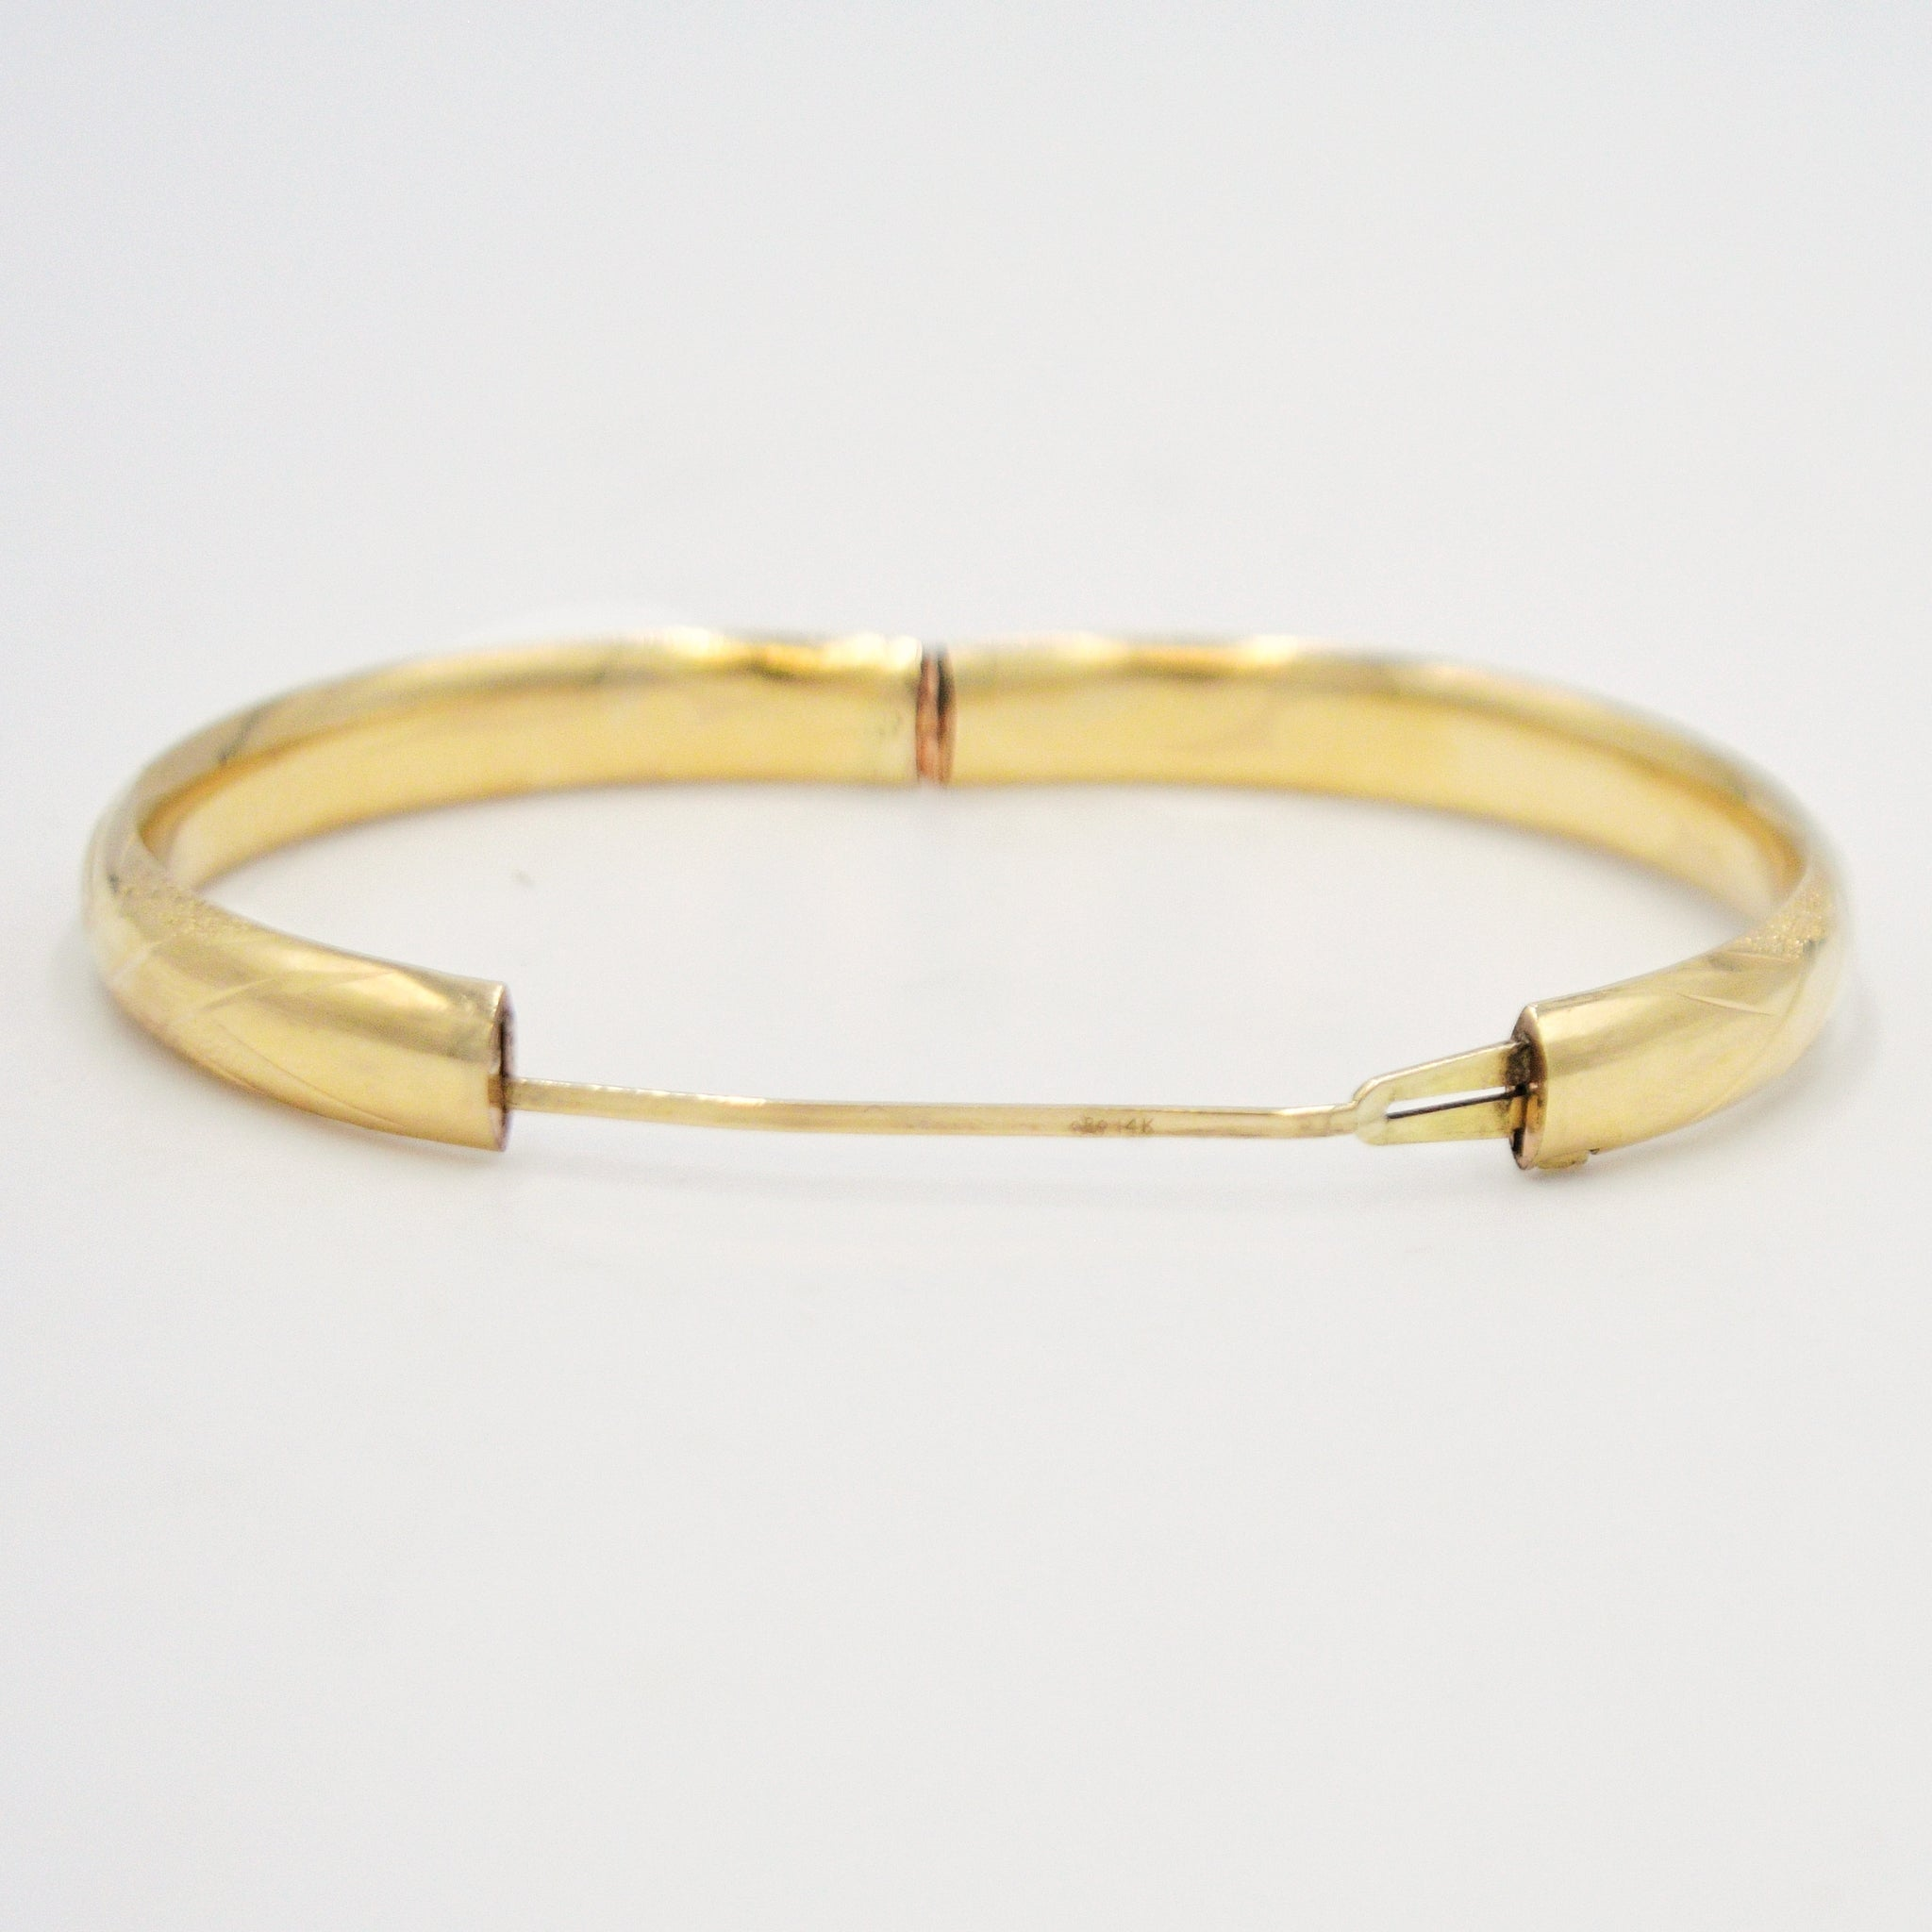 14k Yellow Gold Designer Bailey Banks Biddle Hinged Bangle Bracelet Jewelry Is Me